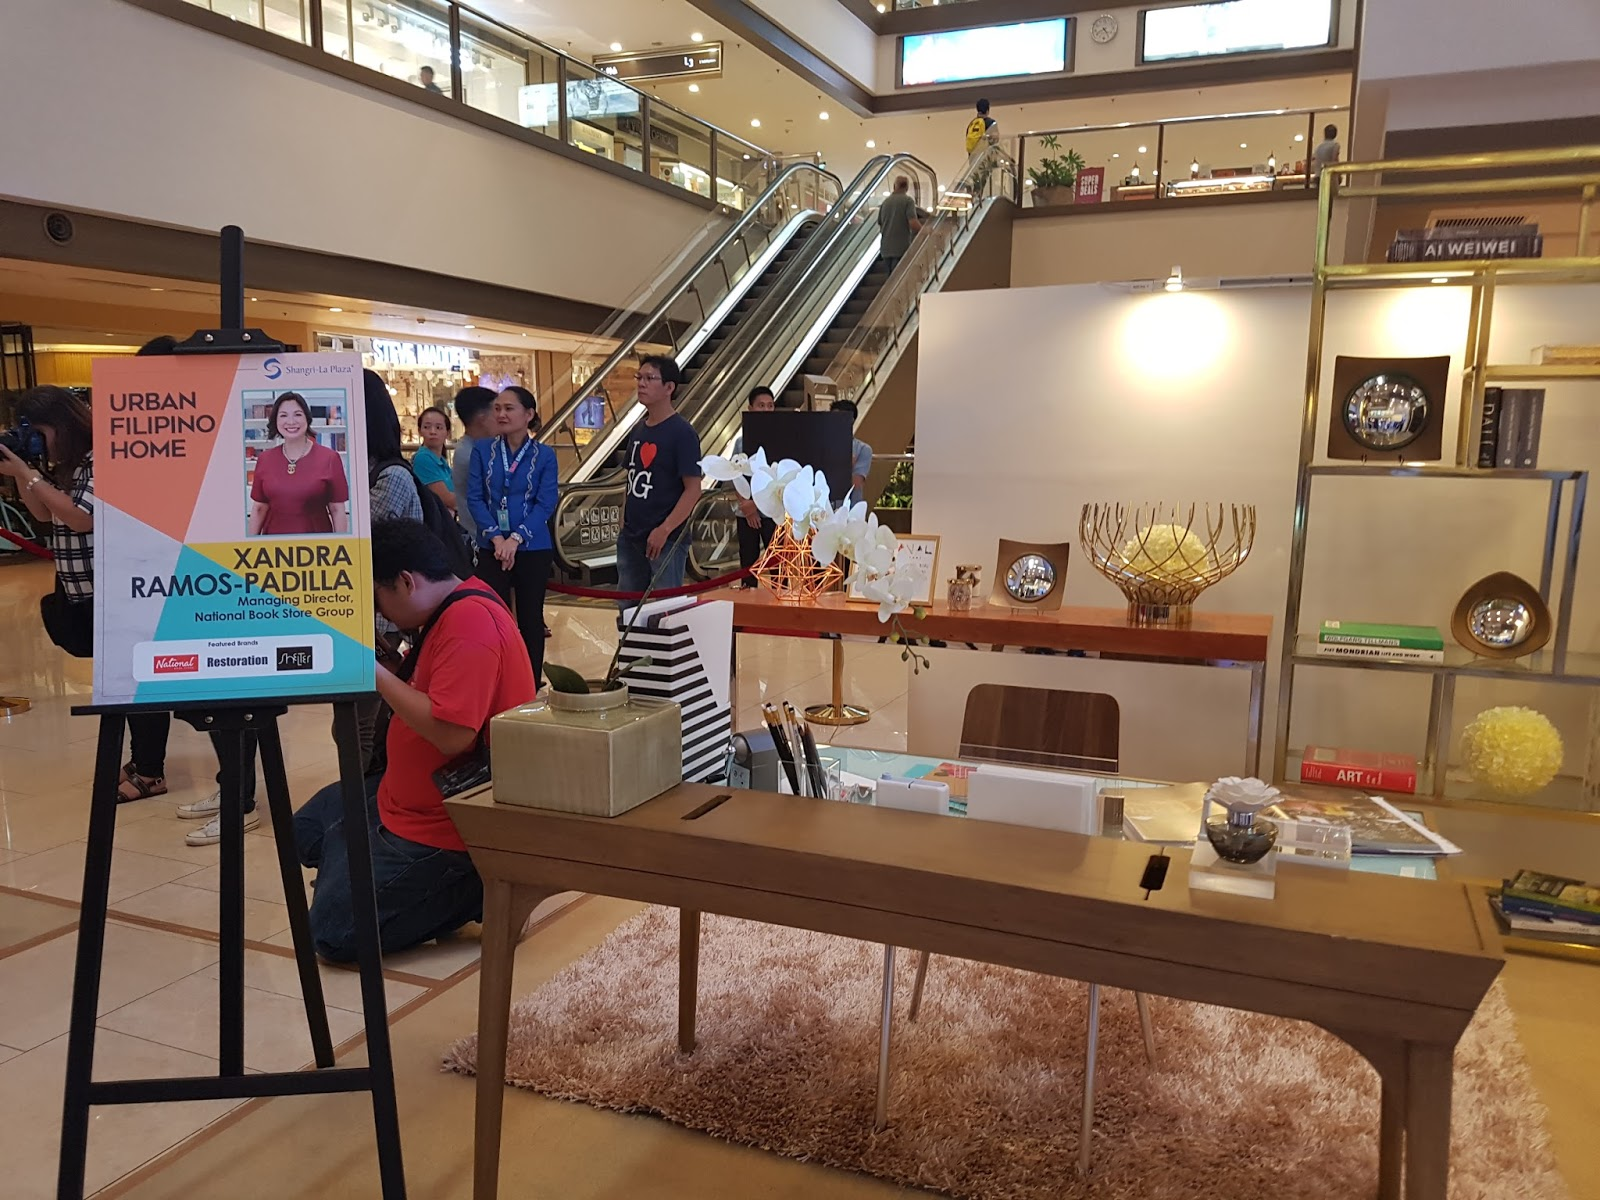 Jampacked Lifestyle Shangri La Plaza S Urban Filipino